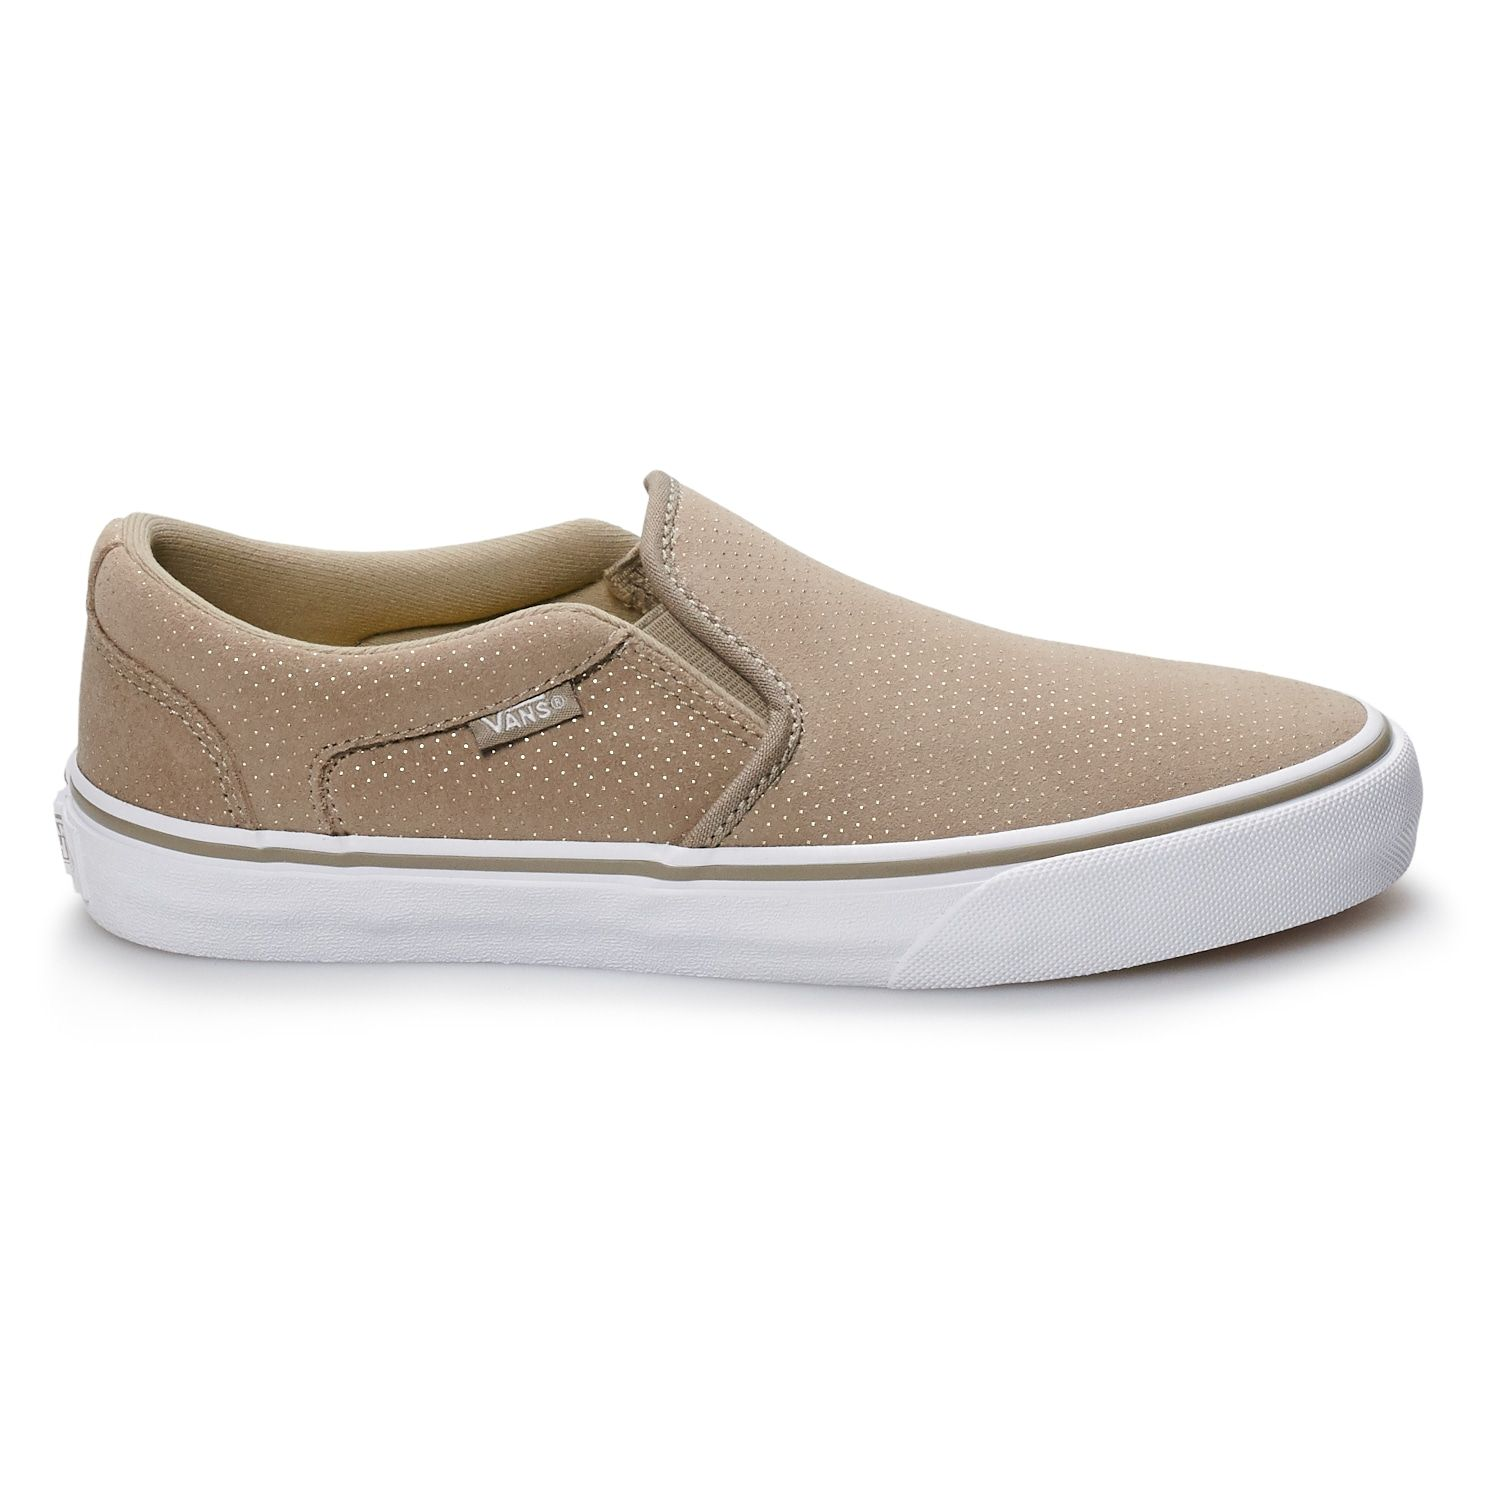 adbf62d9 Vans Asher DX Women's Suede Skate Shoes in 2019 | Girls' Sandals ...